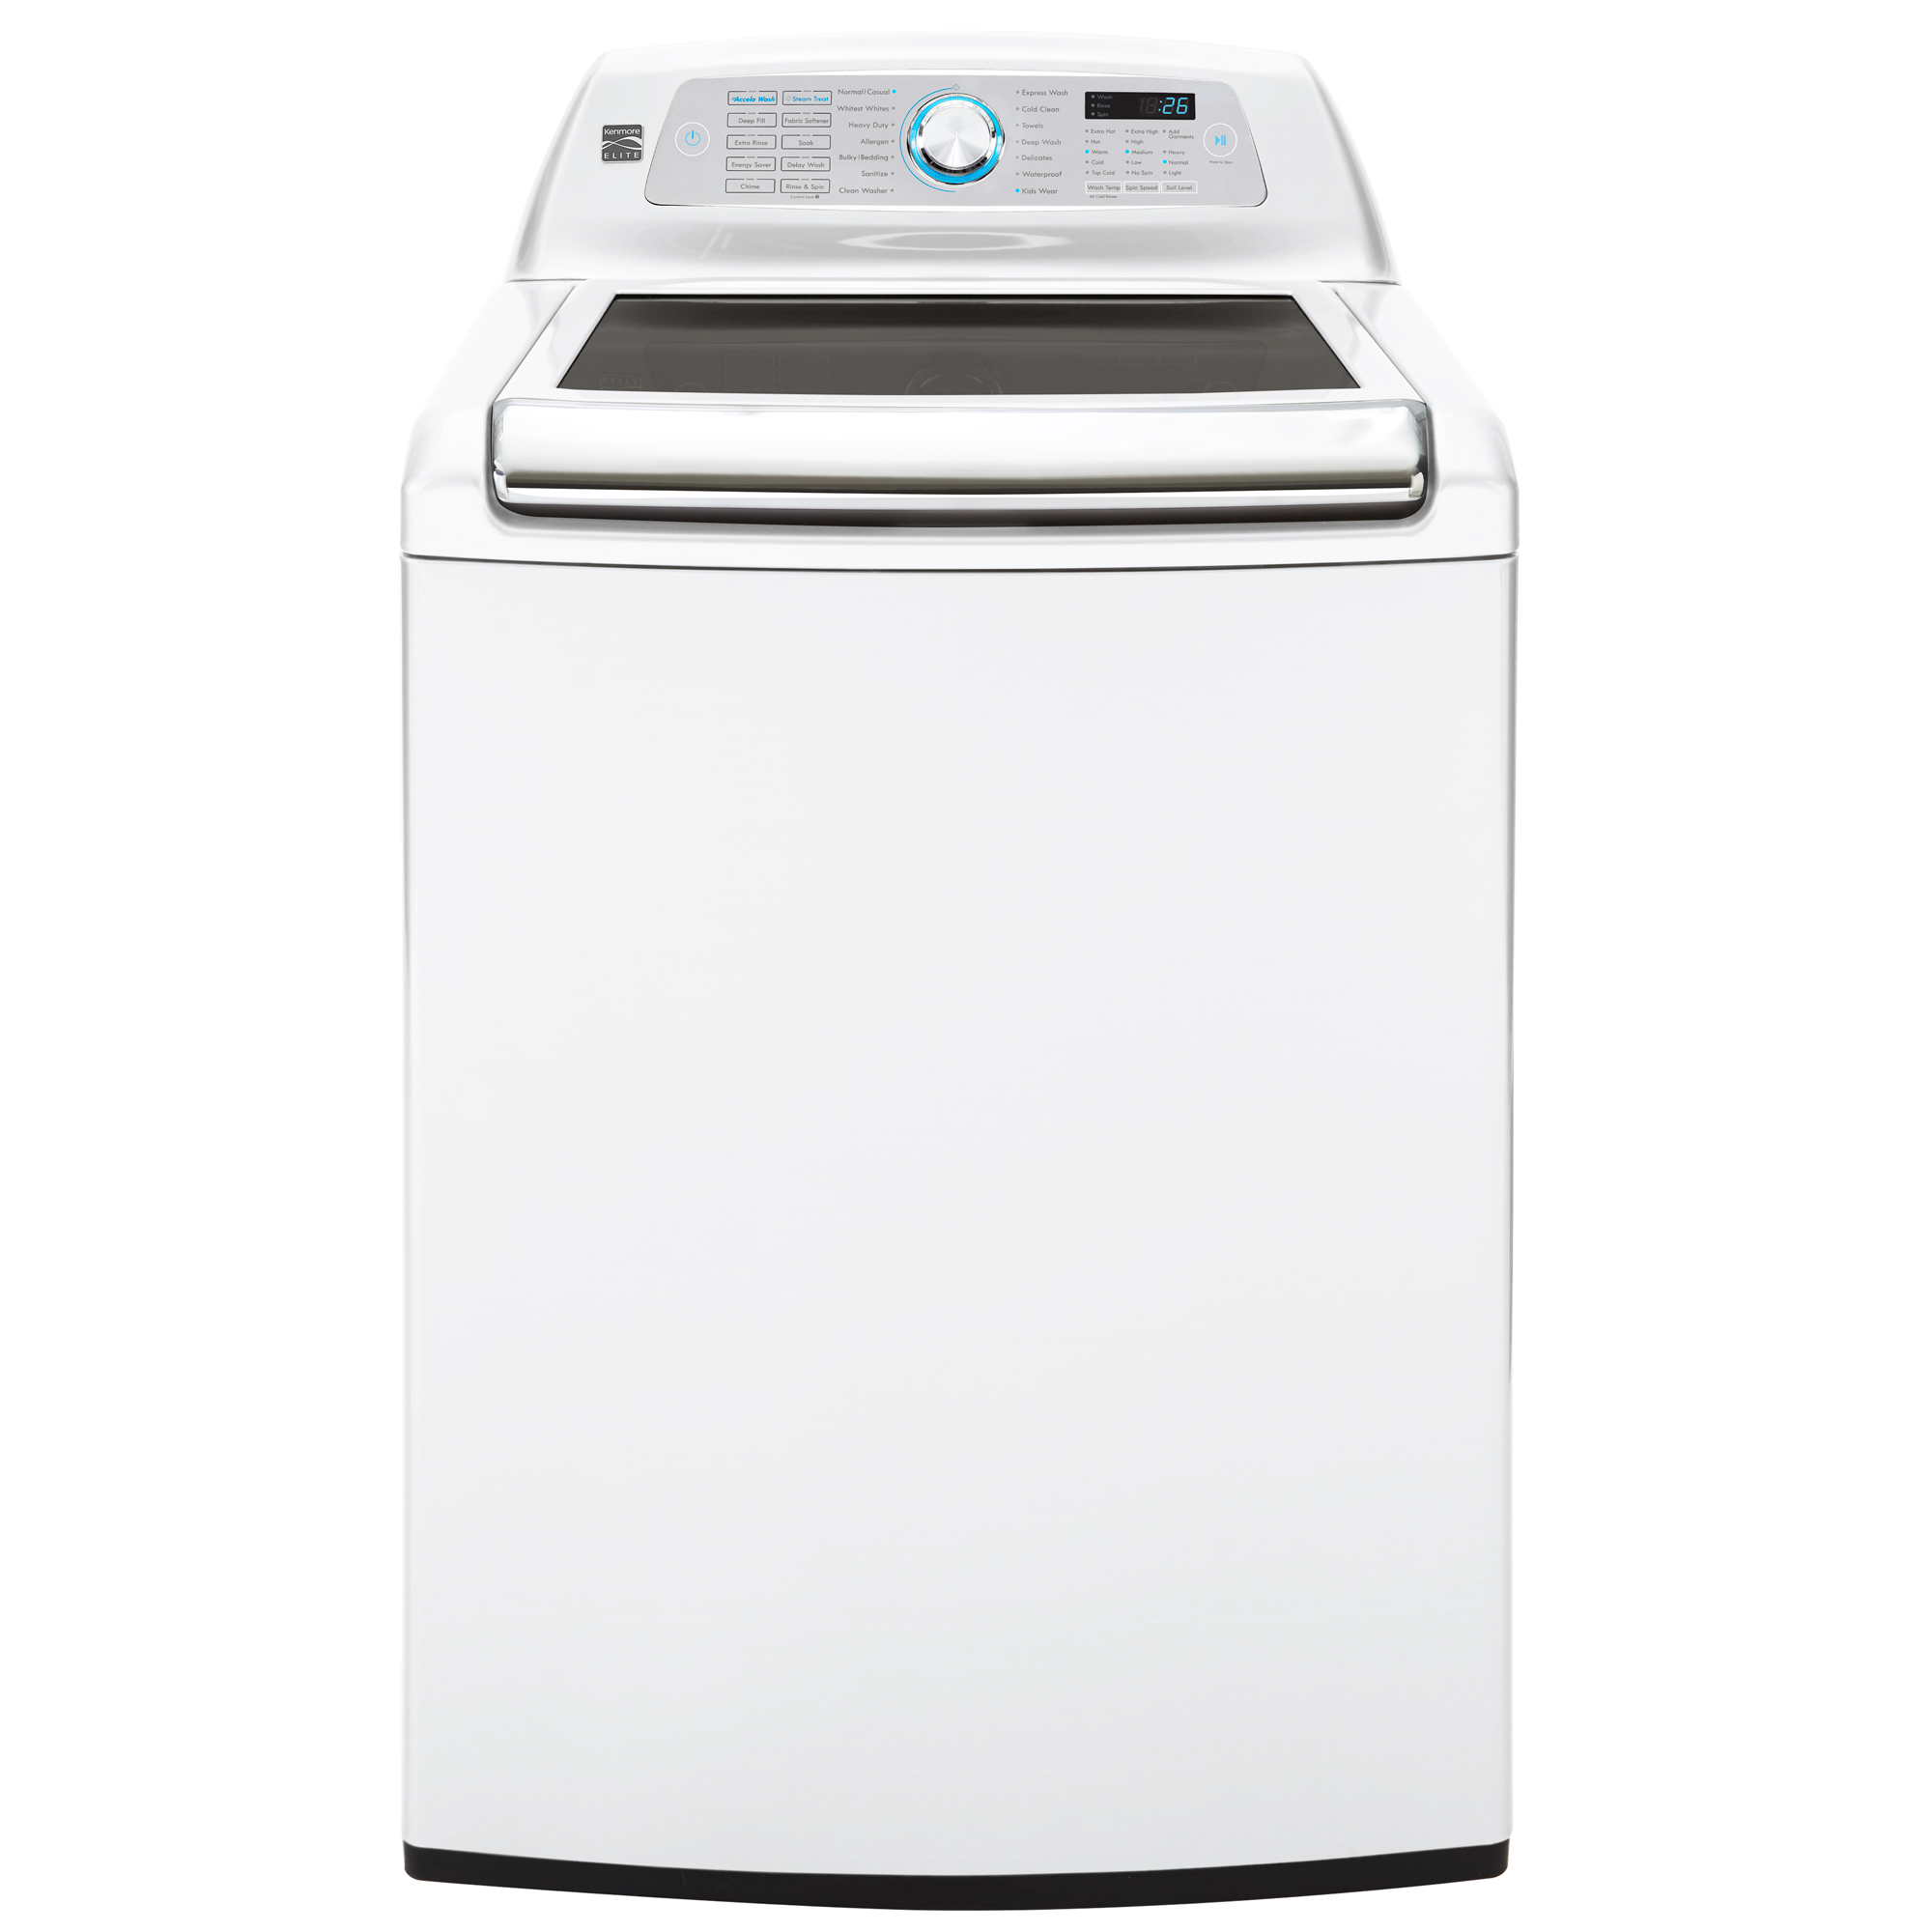 31552-5-2-cu-ft-Top-Load-Washer-w-Steam-Treat%C2%AE-Accela-Wash%C2%AE-White